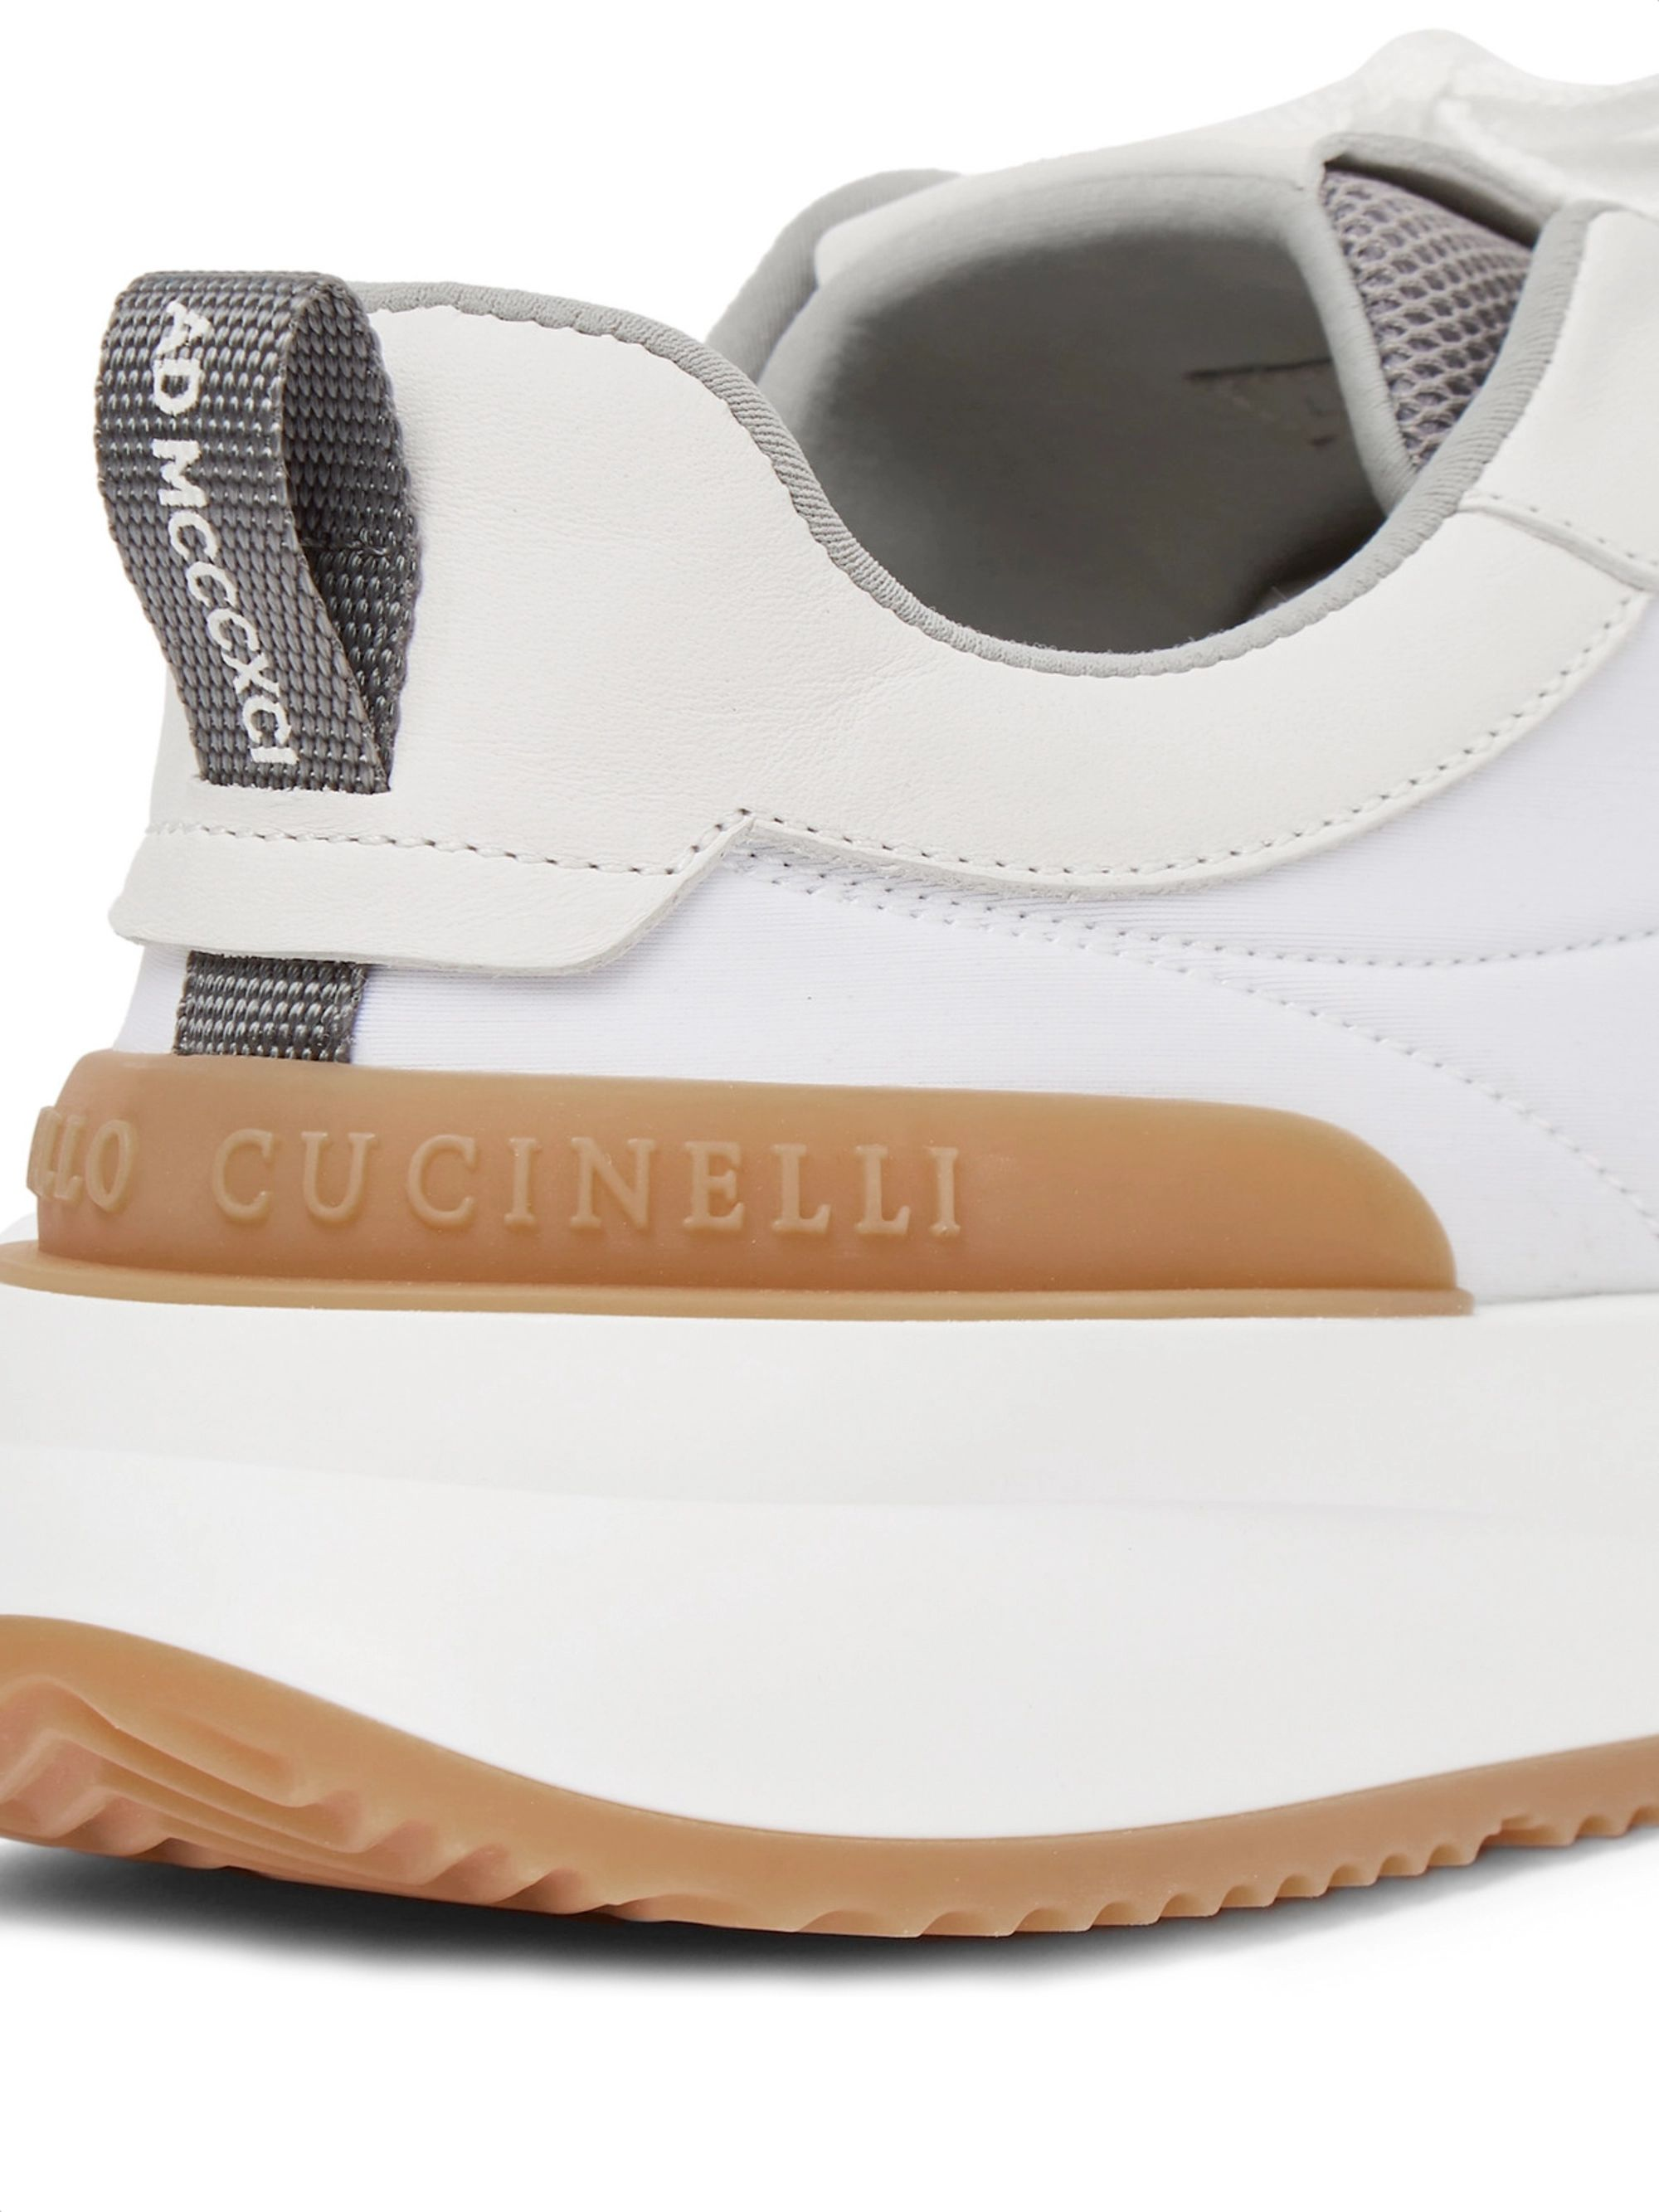 Brunello Cucinelli Leather-Trimmed Suede and Neoprene Sneakers